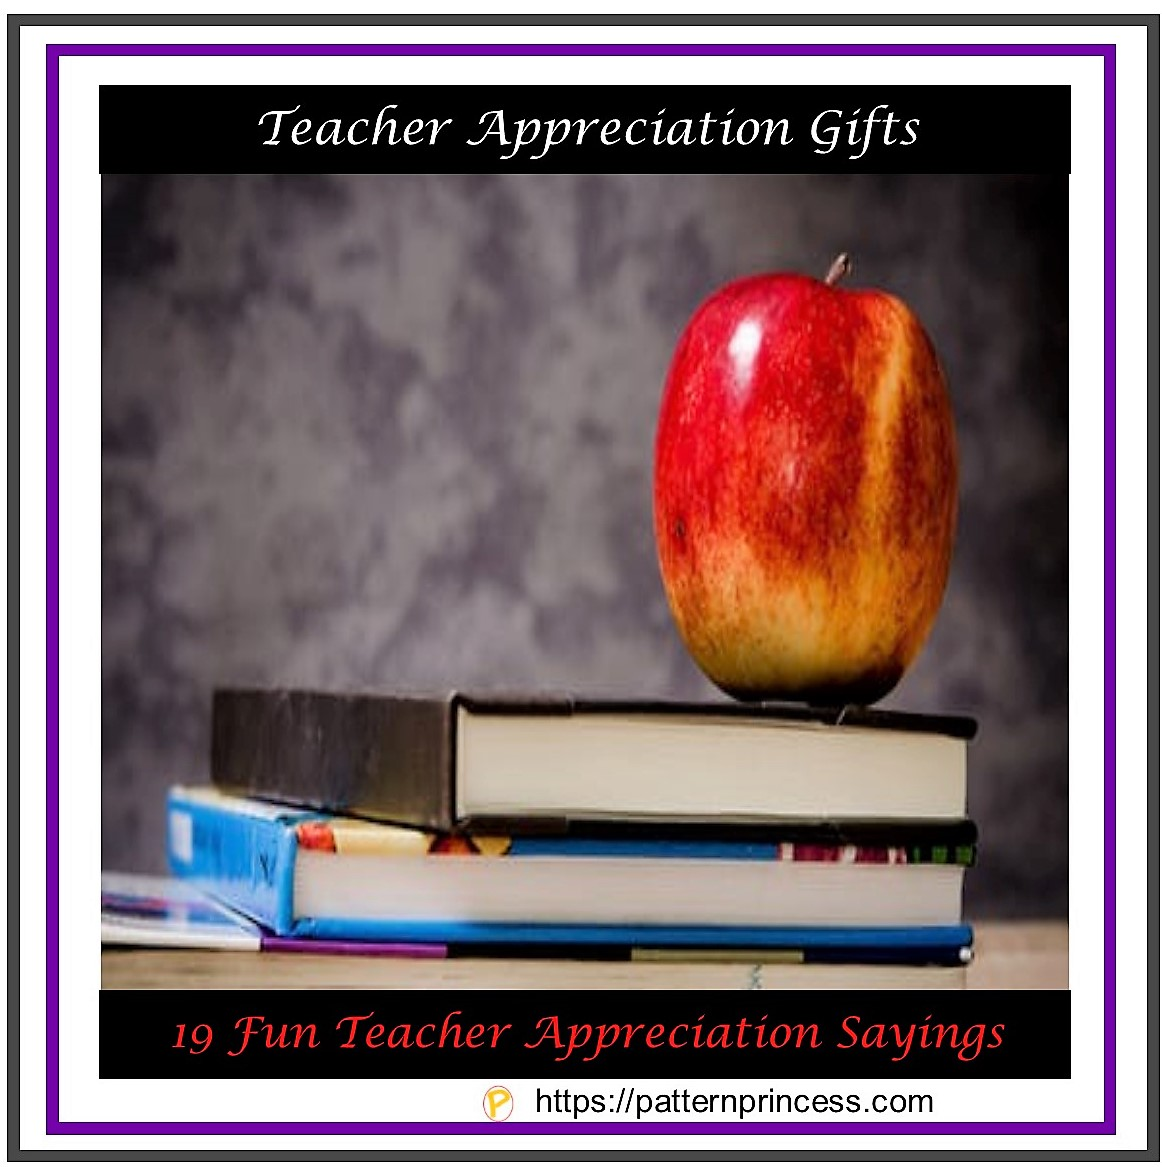 Teacher Appreciation Gifts 1